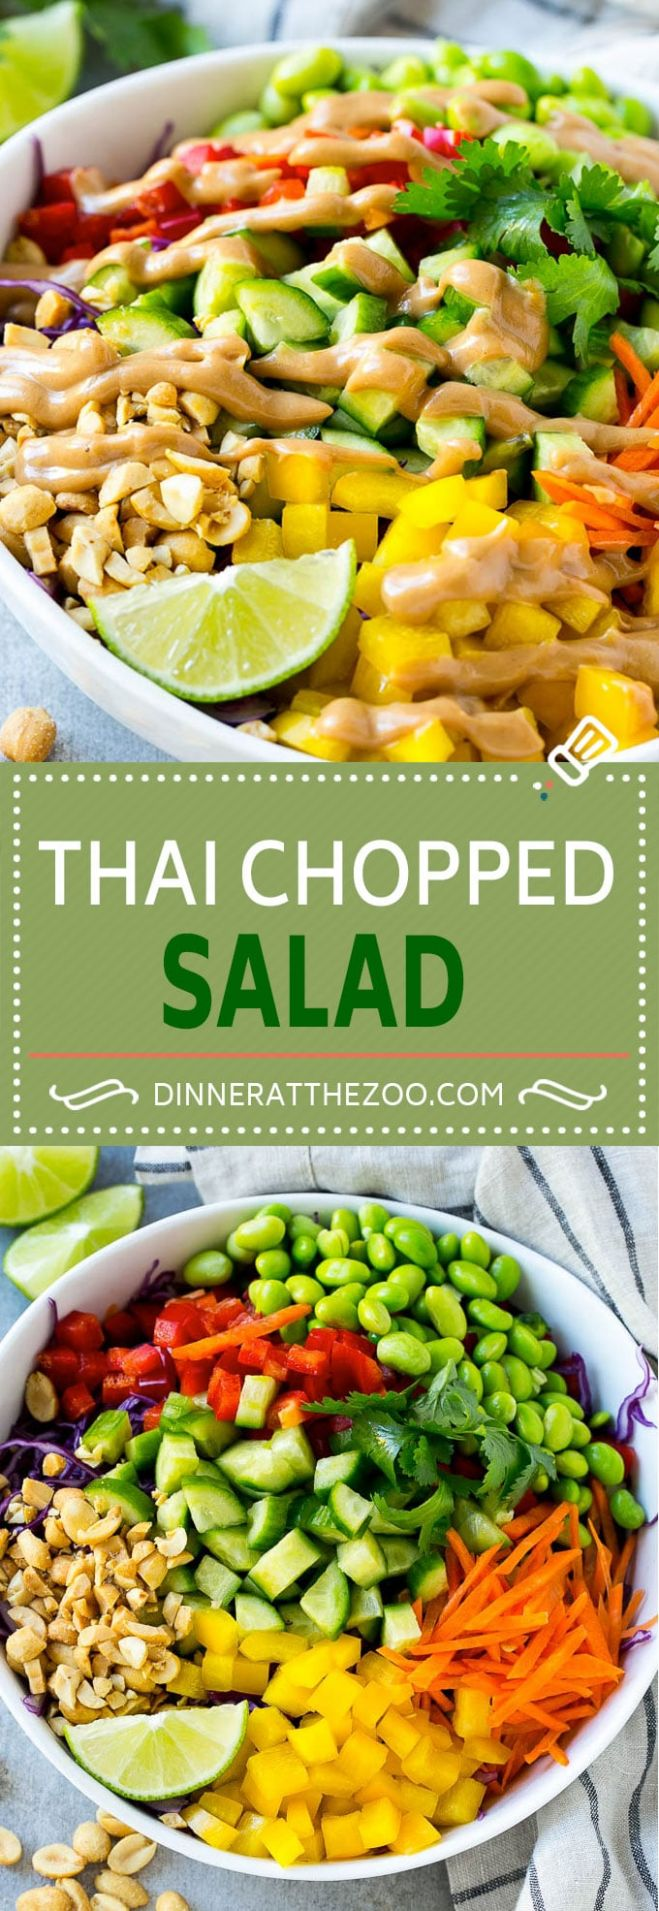 9 Healthy Salad Recipes - Dinner at the Zoo - Salad Recipes Diet